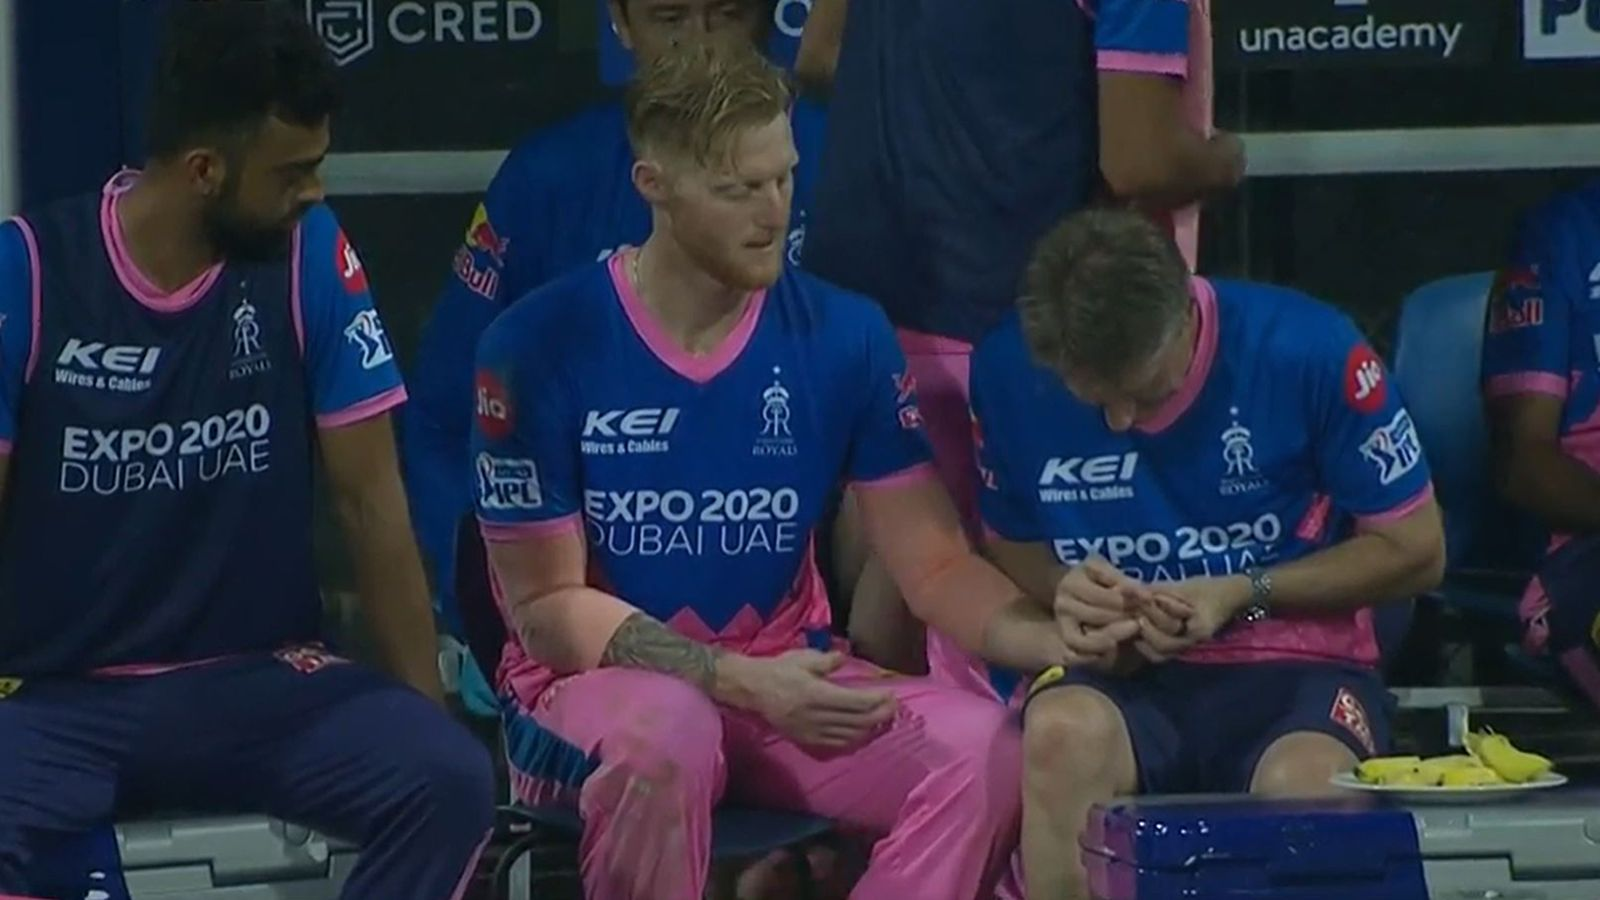 Ben Stokes: England all-rounder to miss rest of Indian Premier League with broken finger - Sky Sports